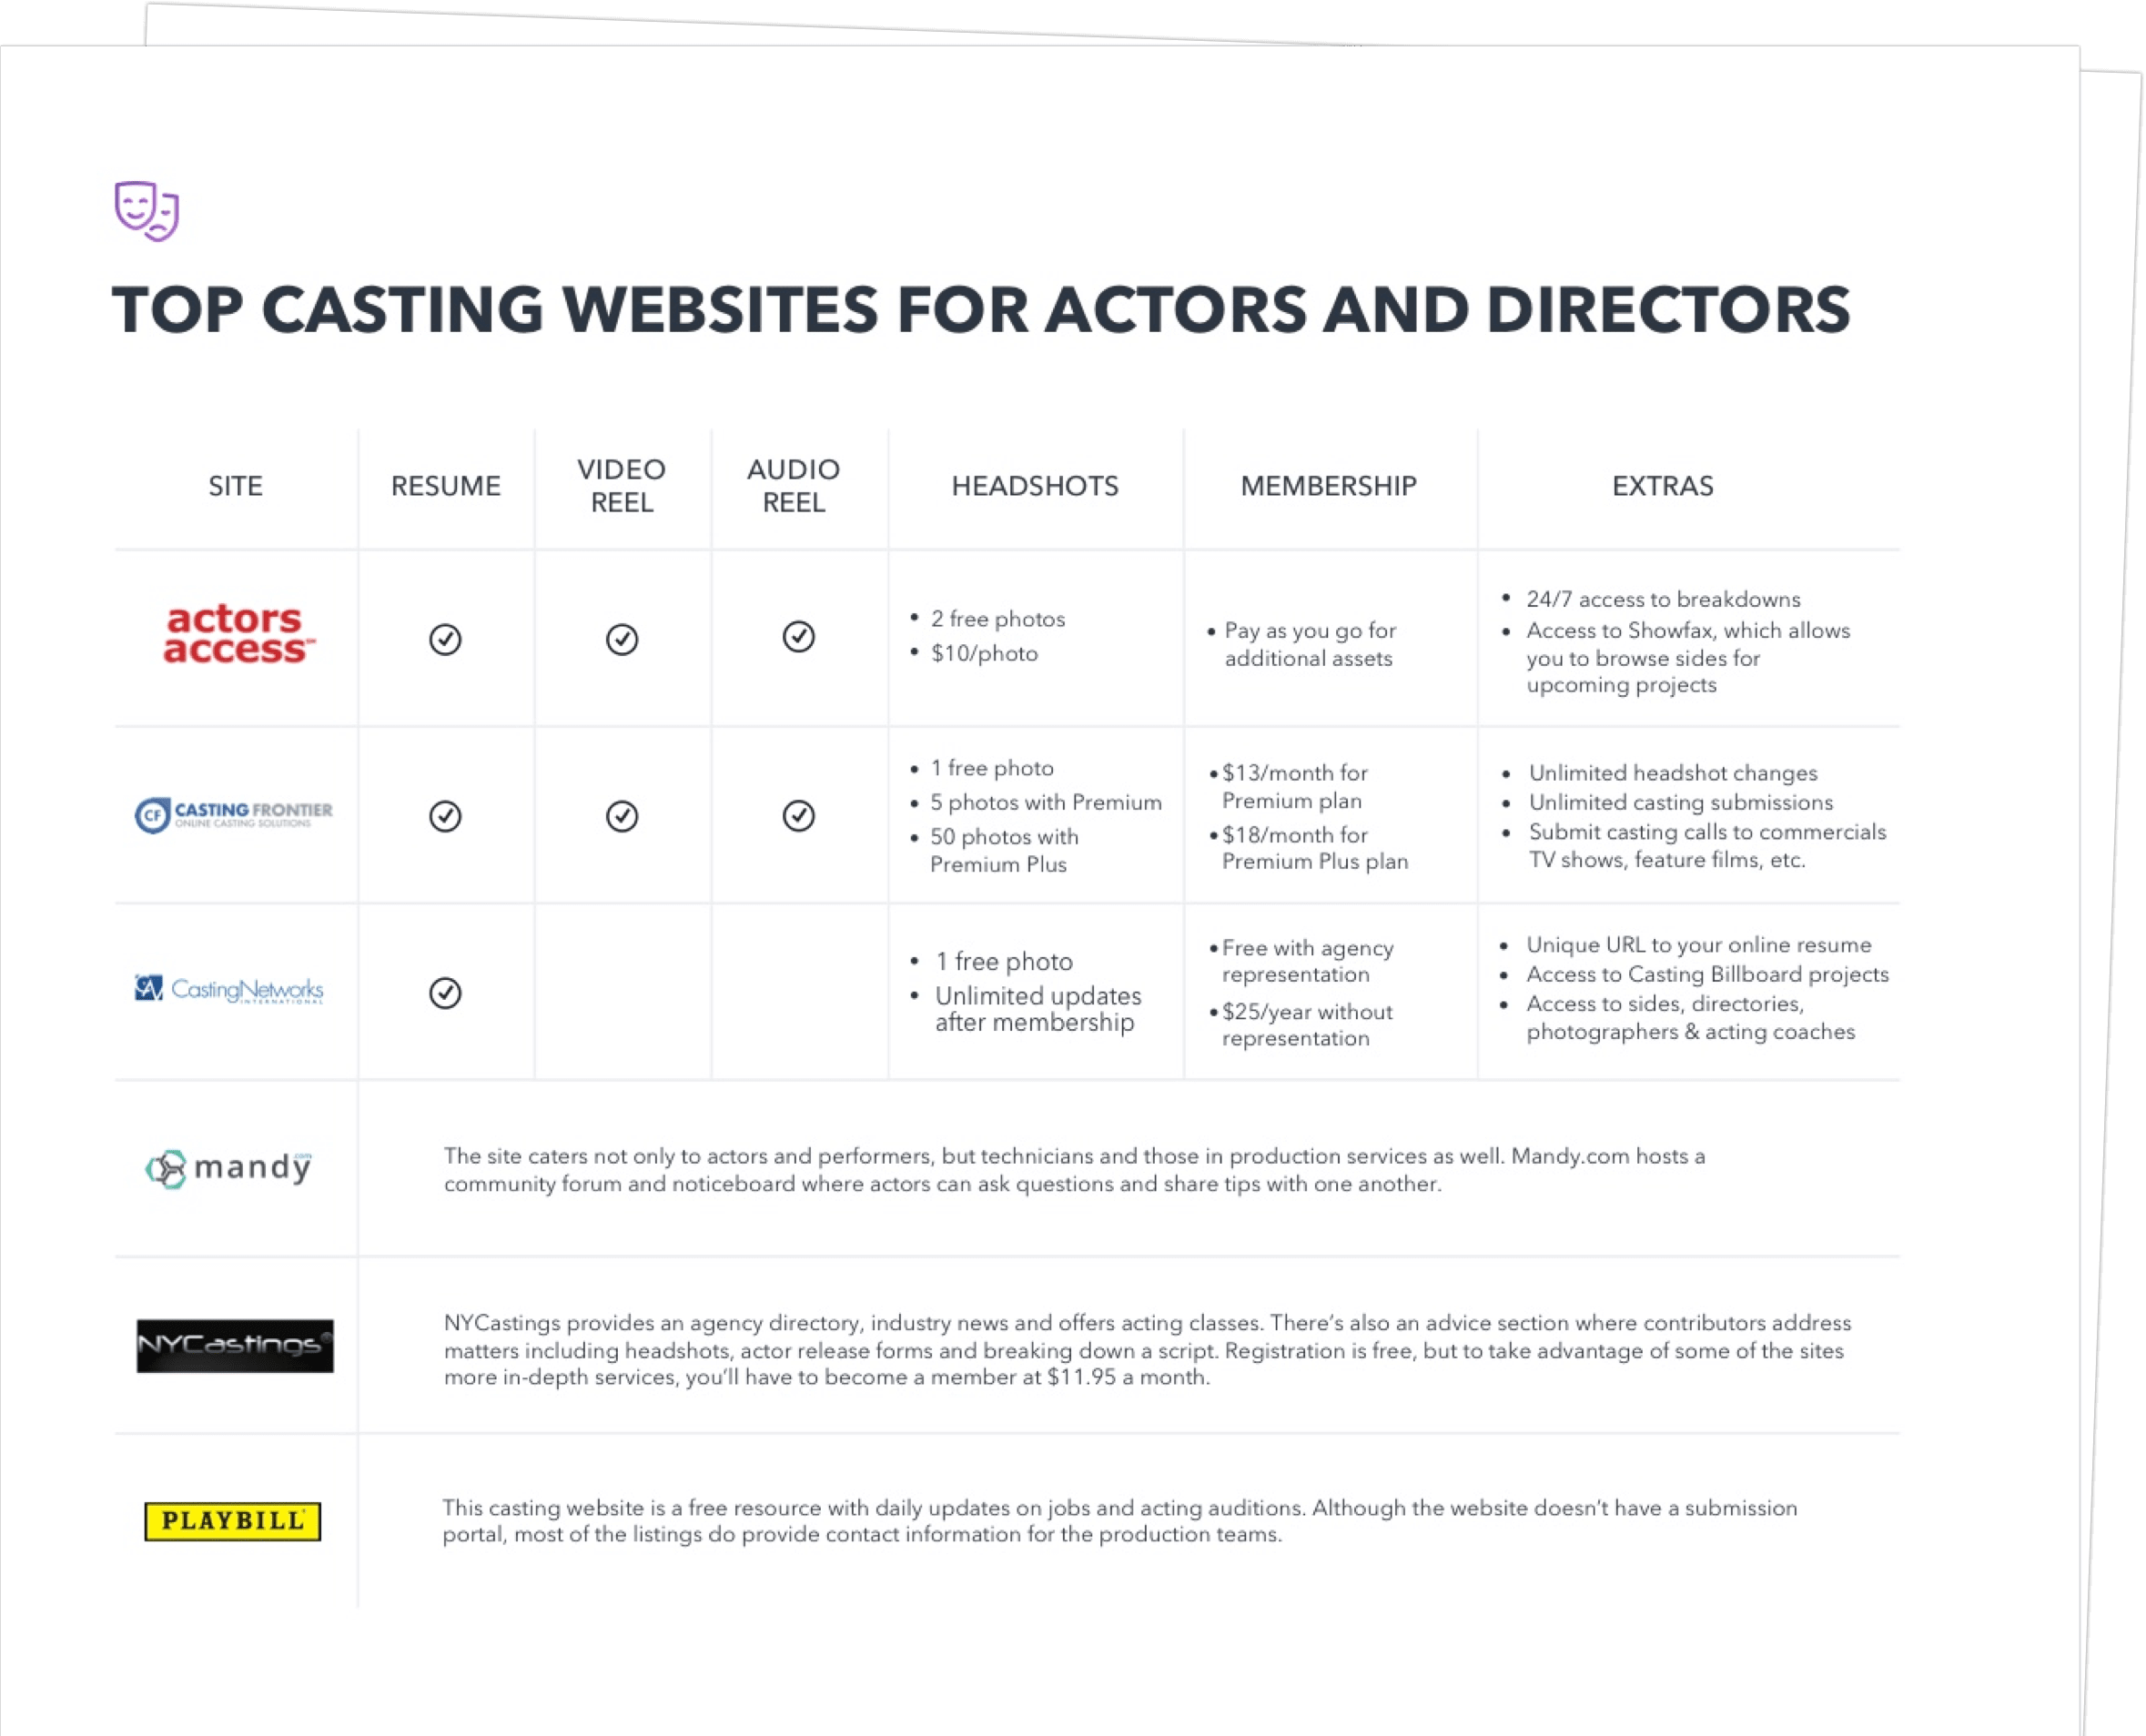 Top Casting Websites For Actors And Directors - Exit Intent Half Page - StudioBinder